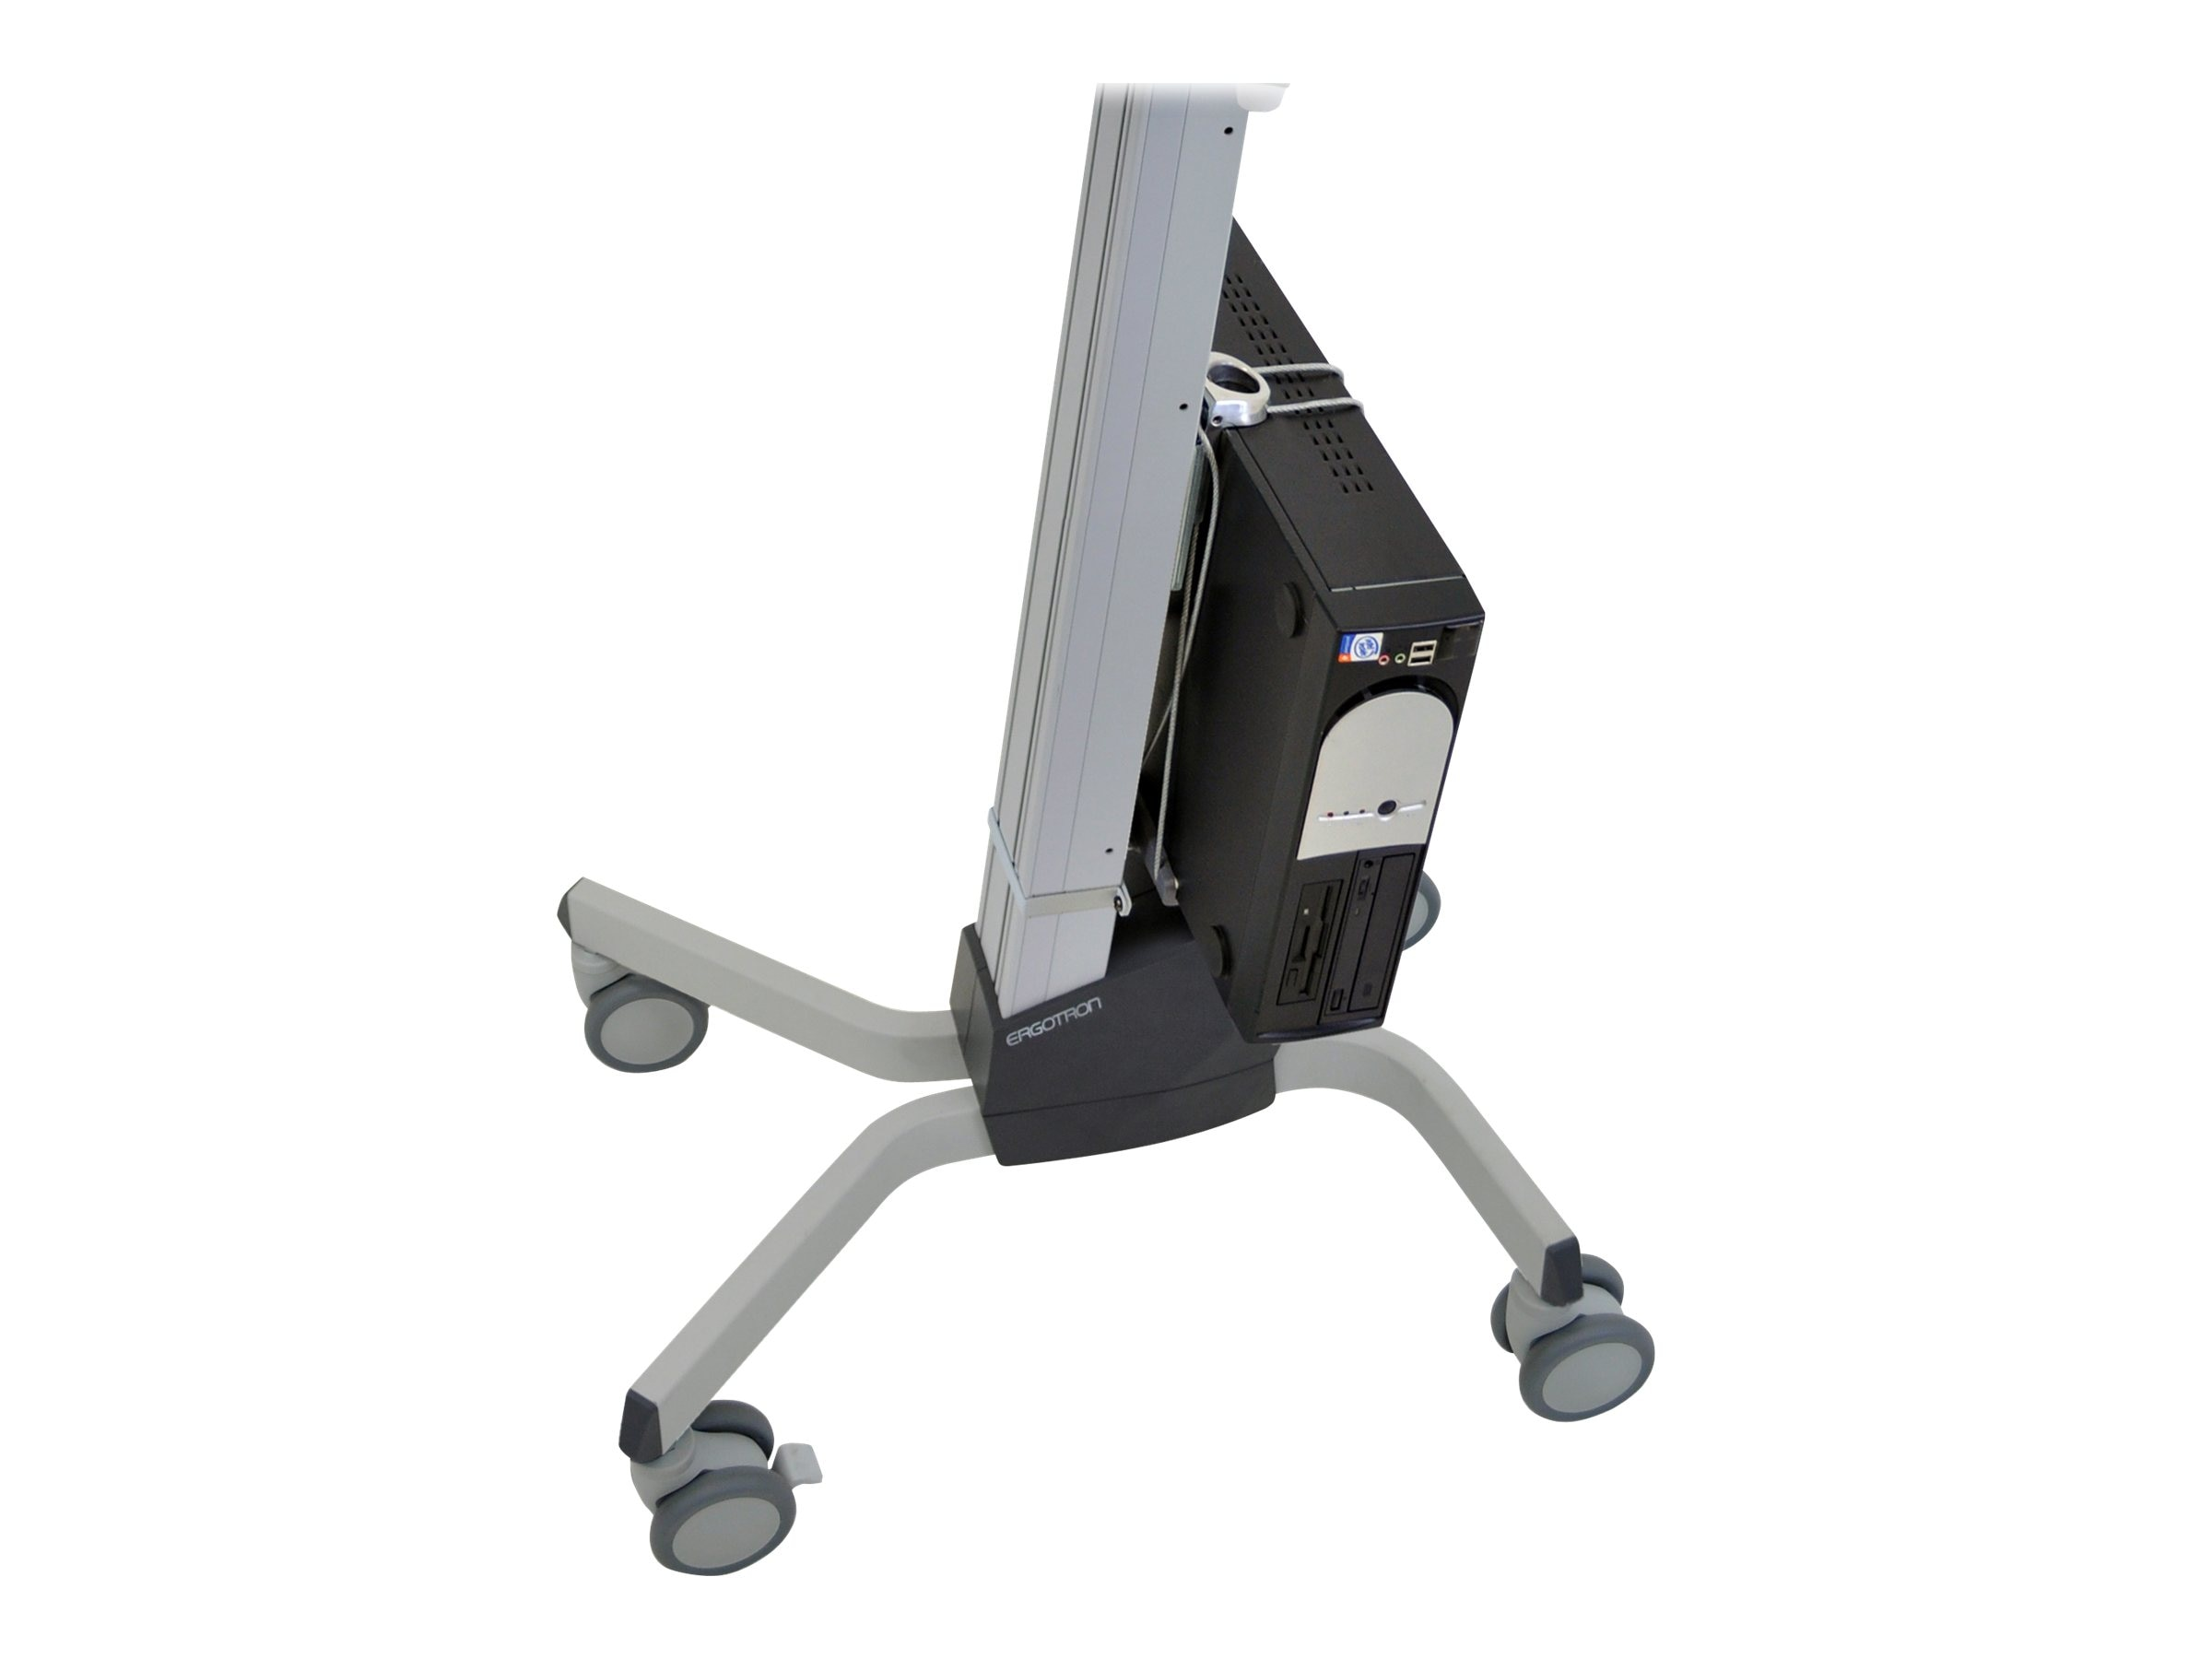 Ergotron Universal Computer CPU Holder